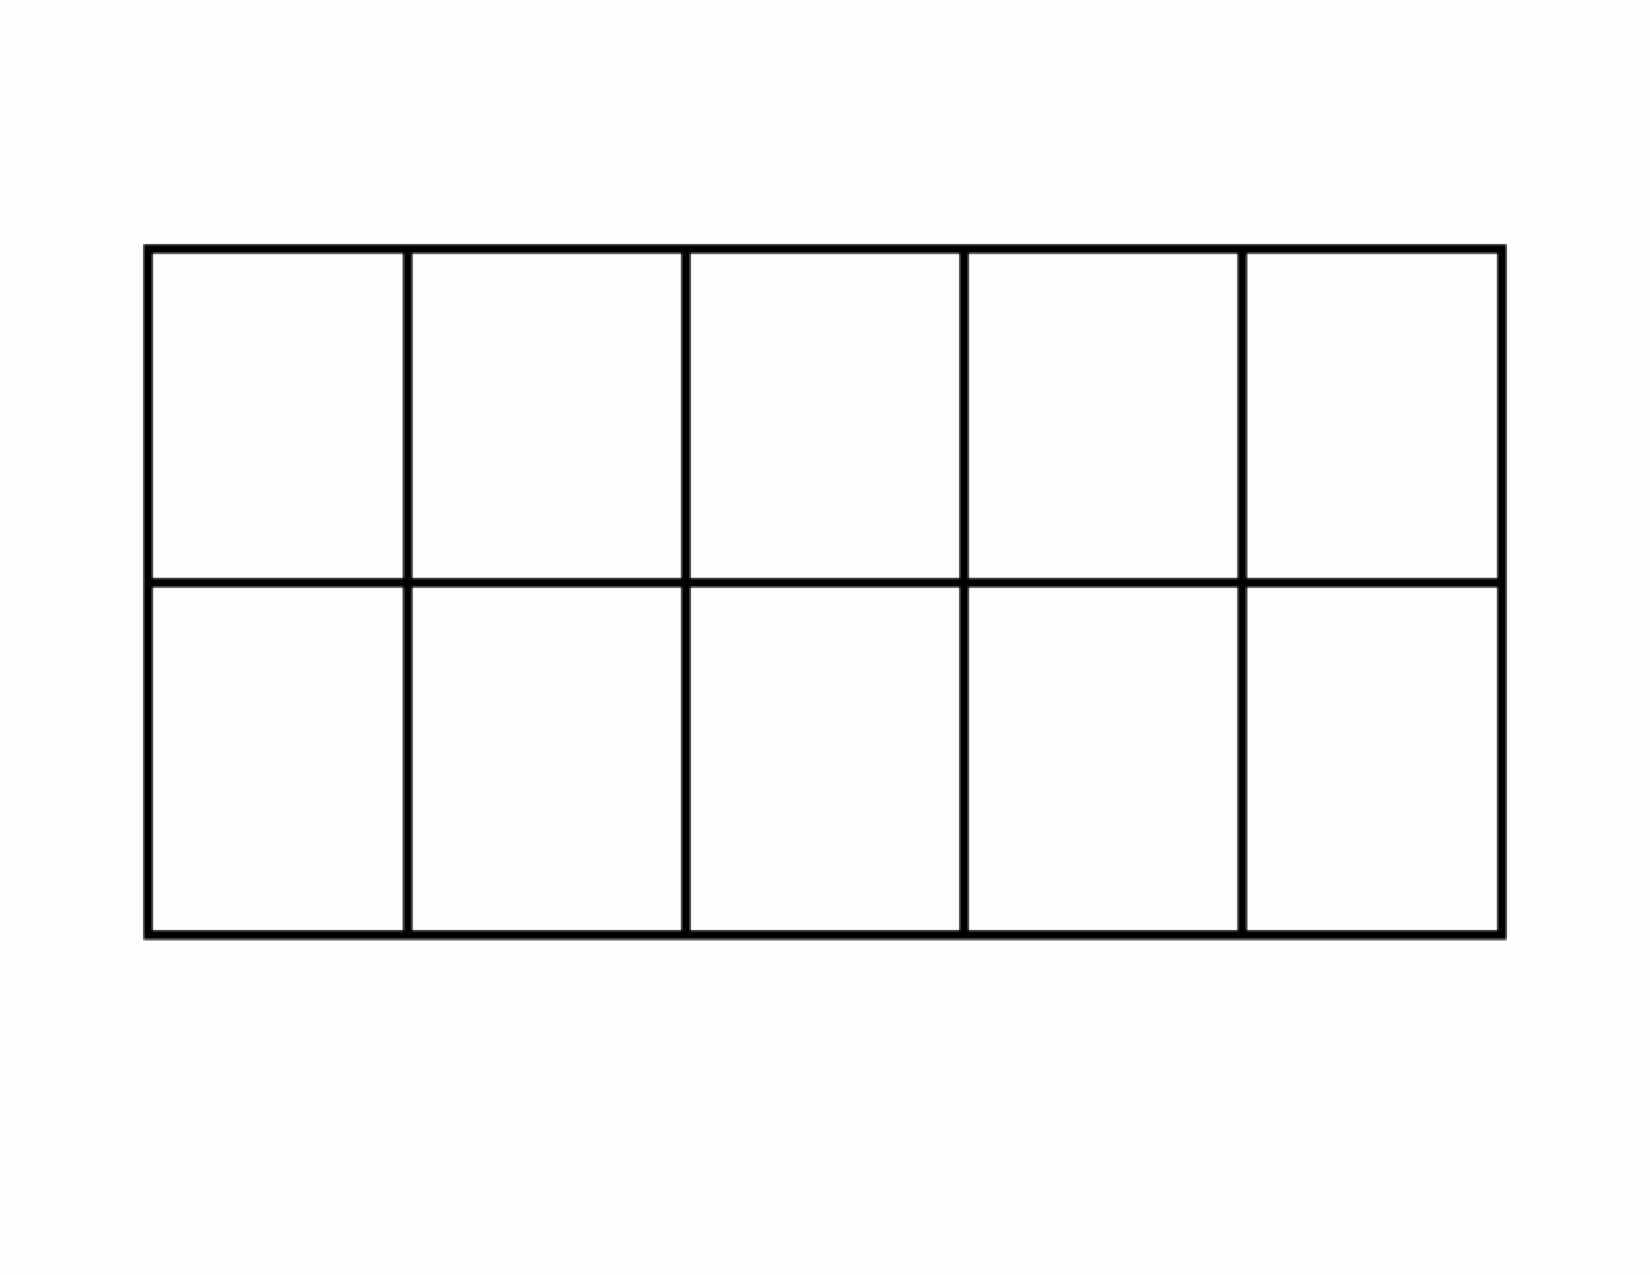 10 Frame Template Printable Awesome the 10 Frame Bakery Kindergarten Math Activity Aligned